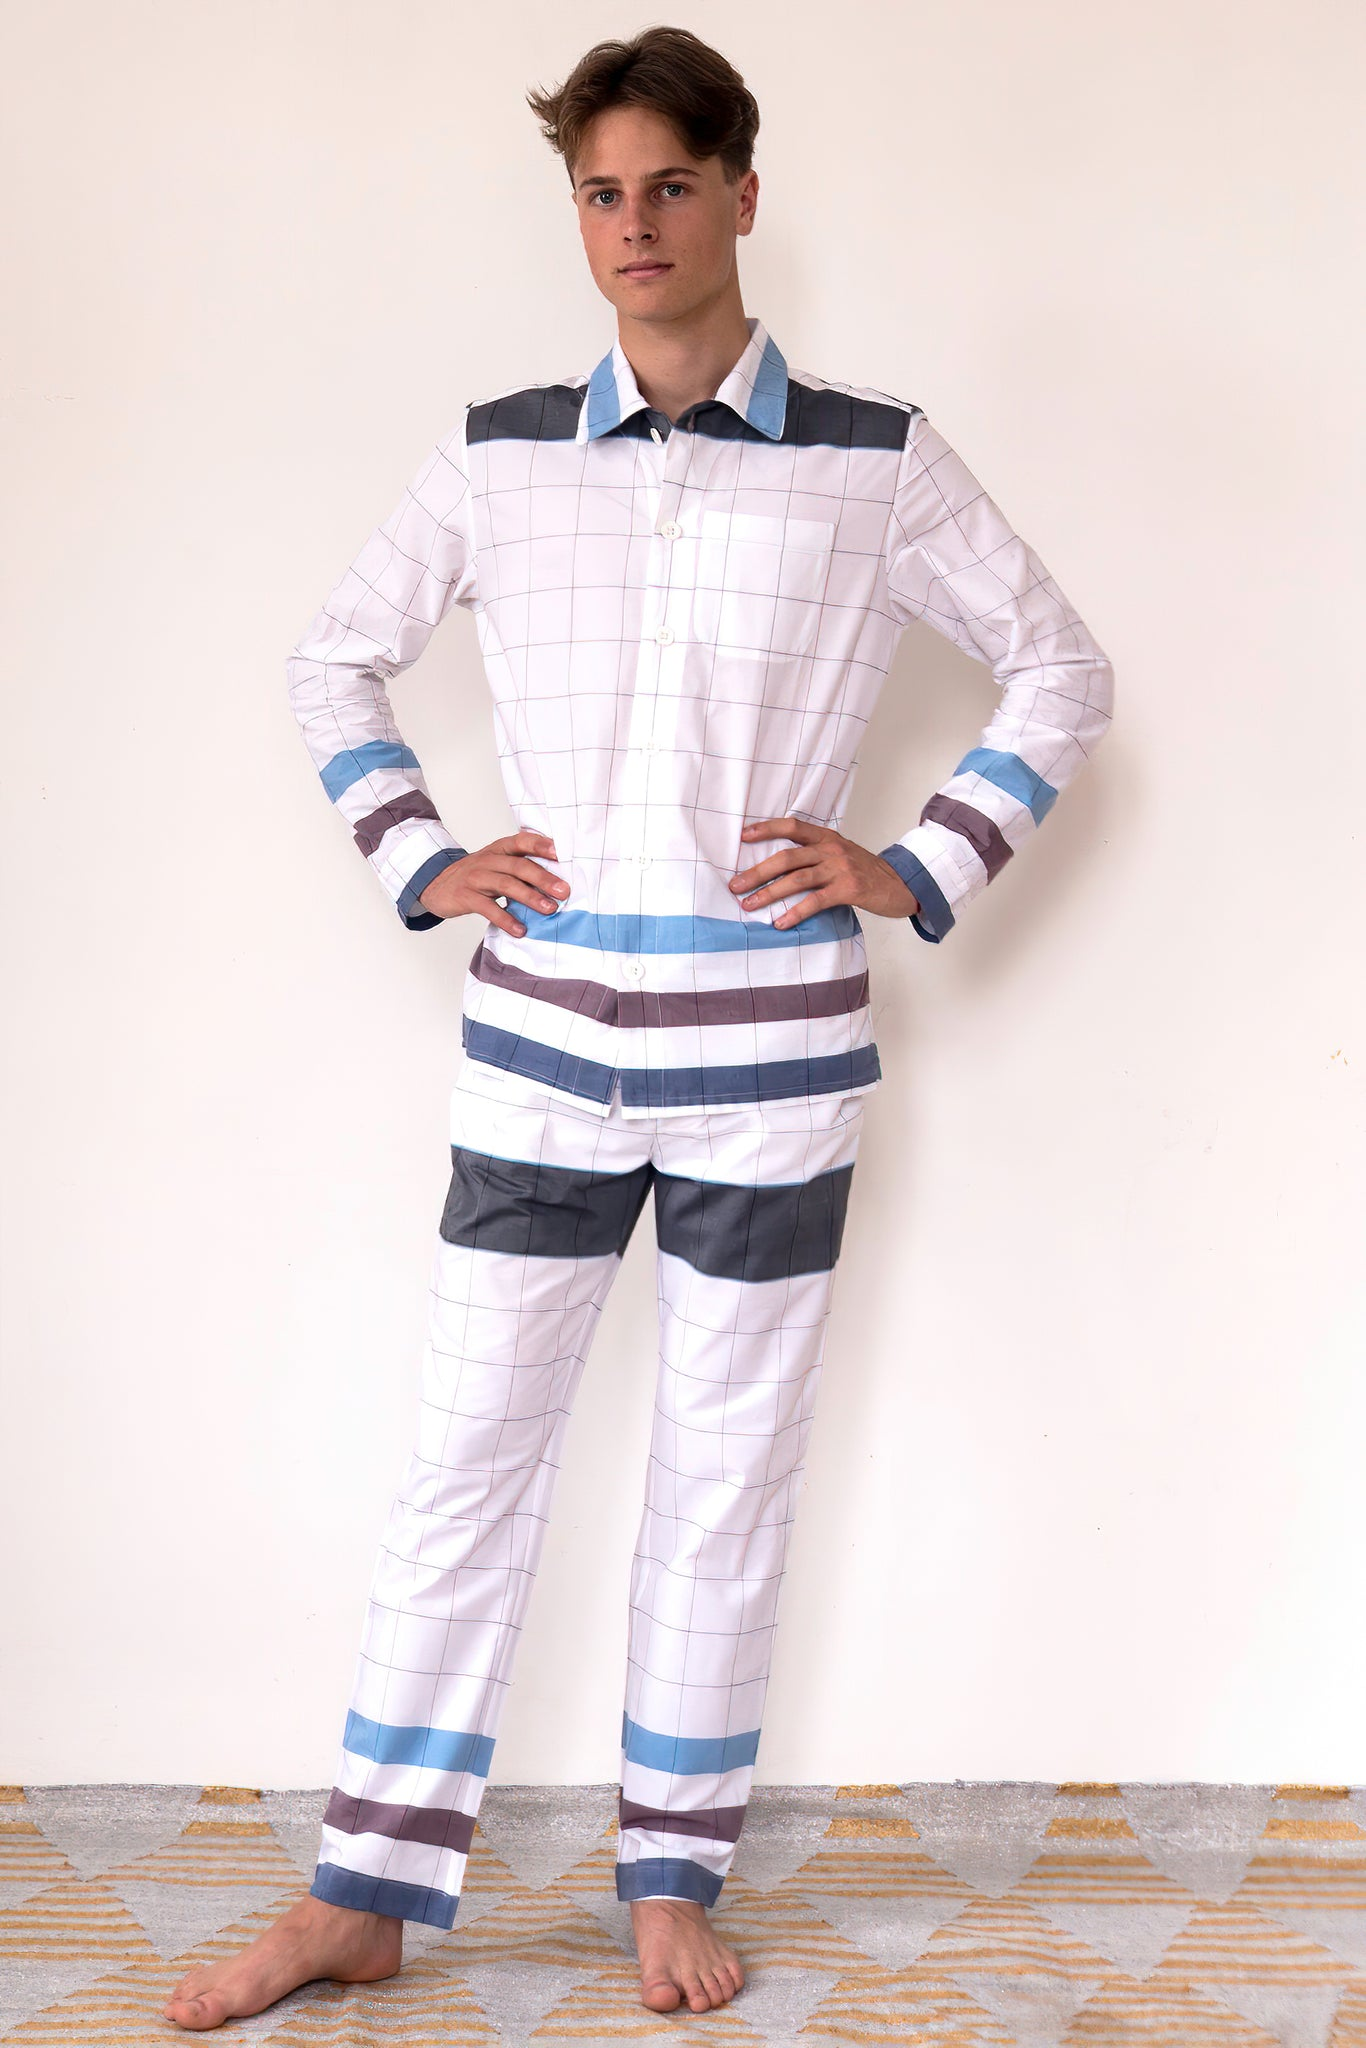 8793 PYJAMA Madras-M-Checks       100%ᴾᵁᴿᴱ COTTON Plain-weave       WHITE-Maroon-blue       Adventure Forest Ocean 1920s 1950s